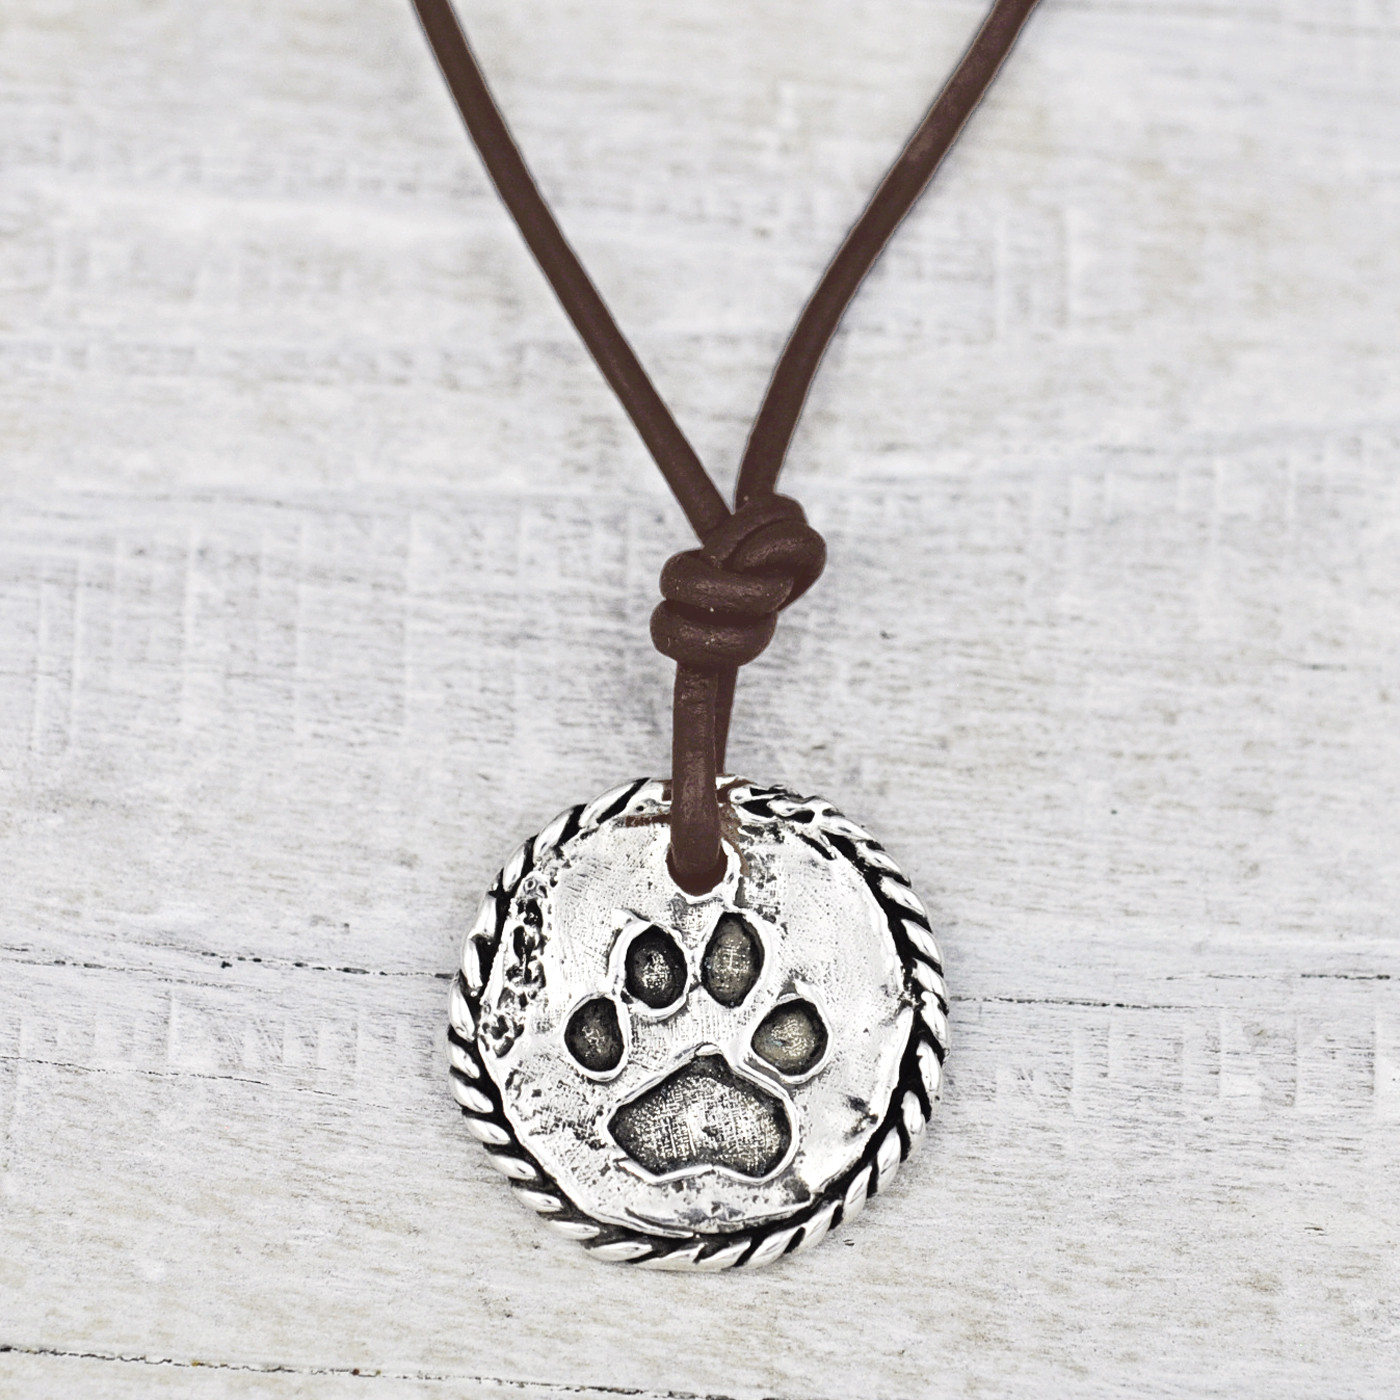 'LOVE HAS PAWS' NECKLACE $48